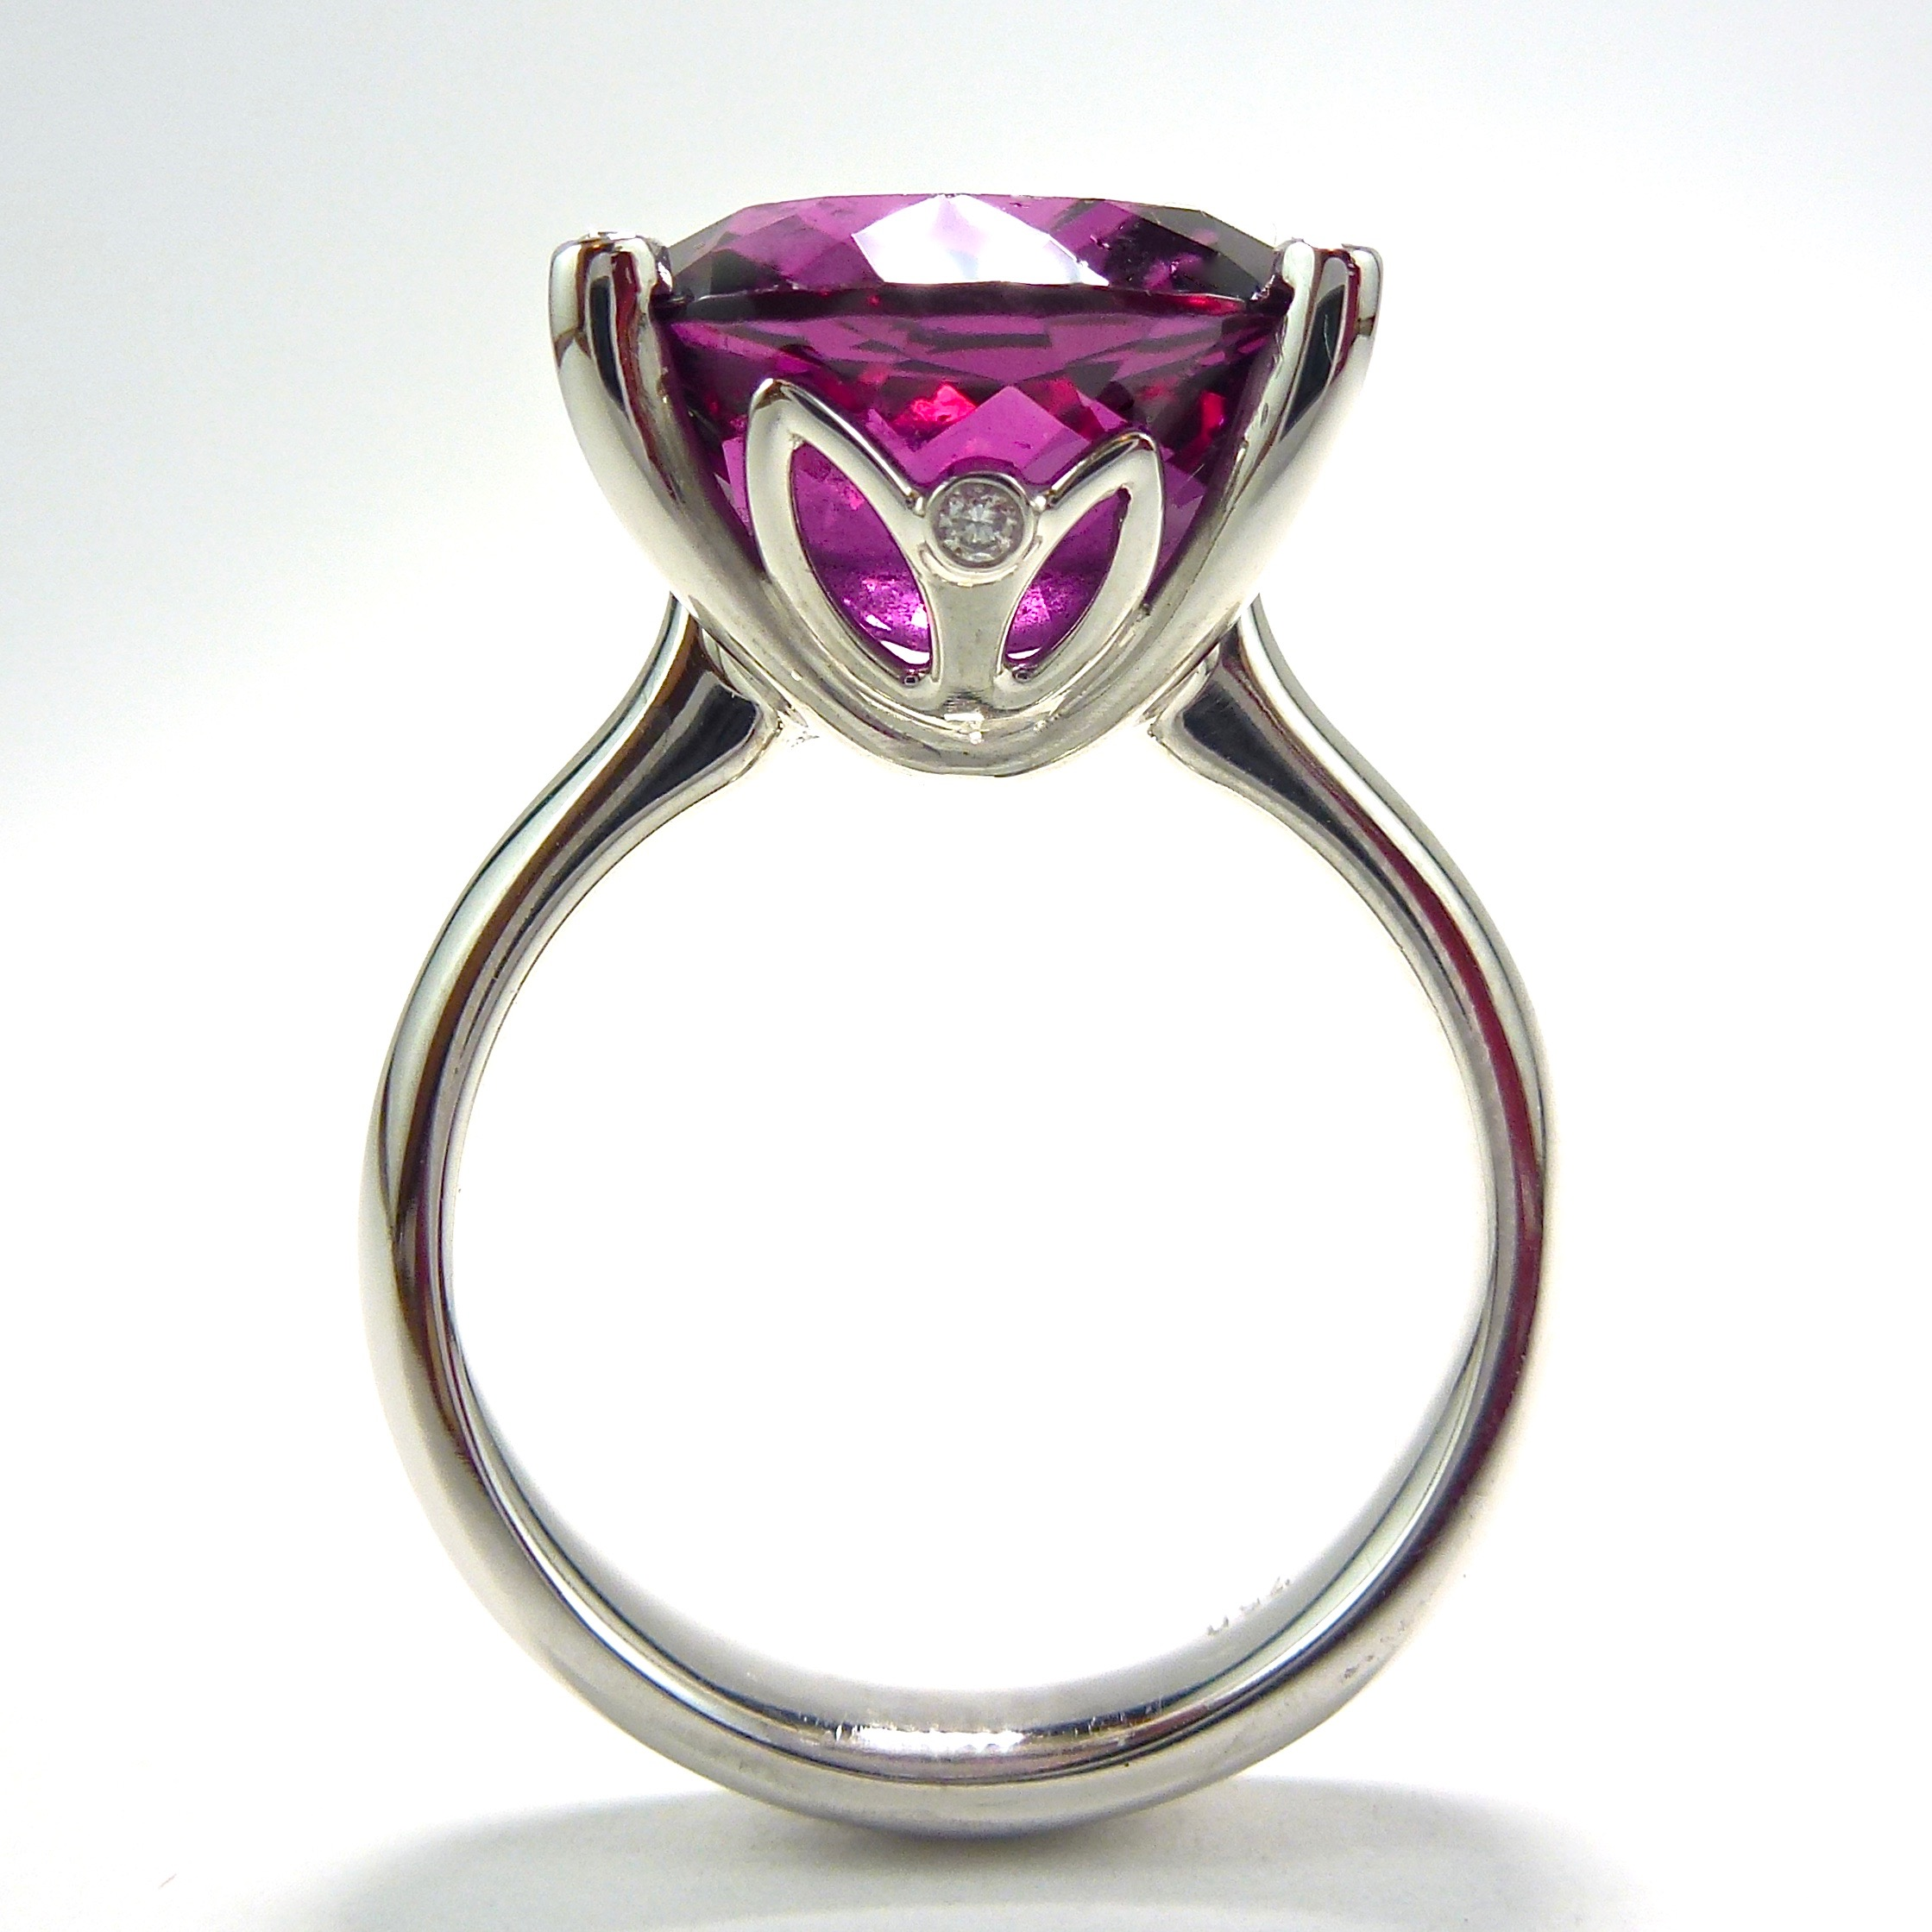 Rhodolite garnet and diamond dress ring in white gold